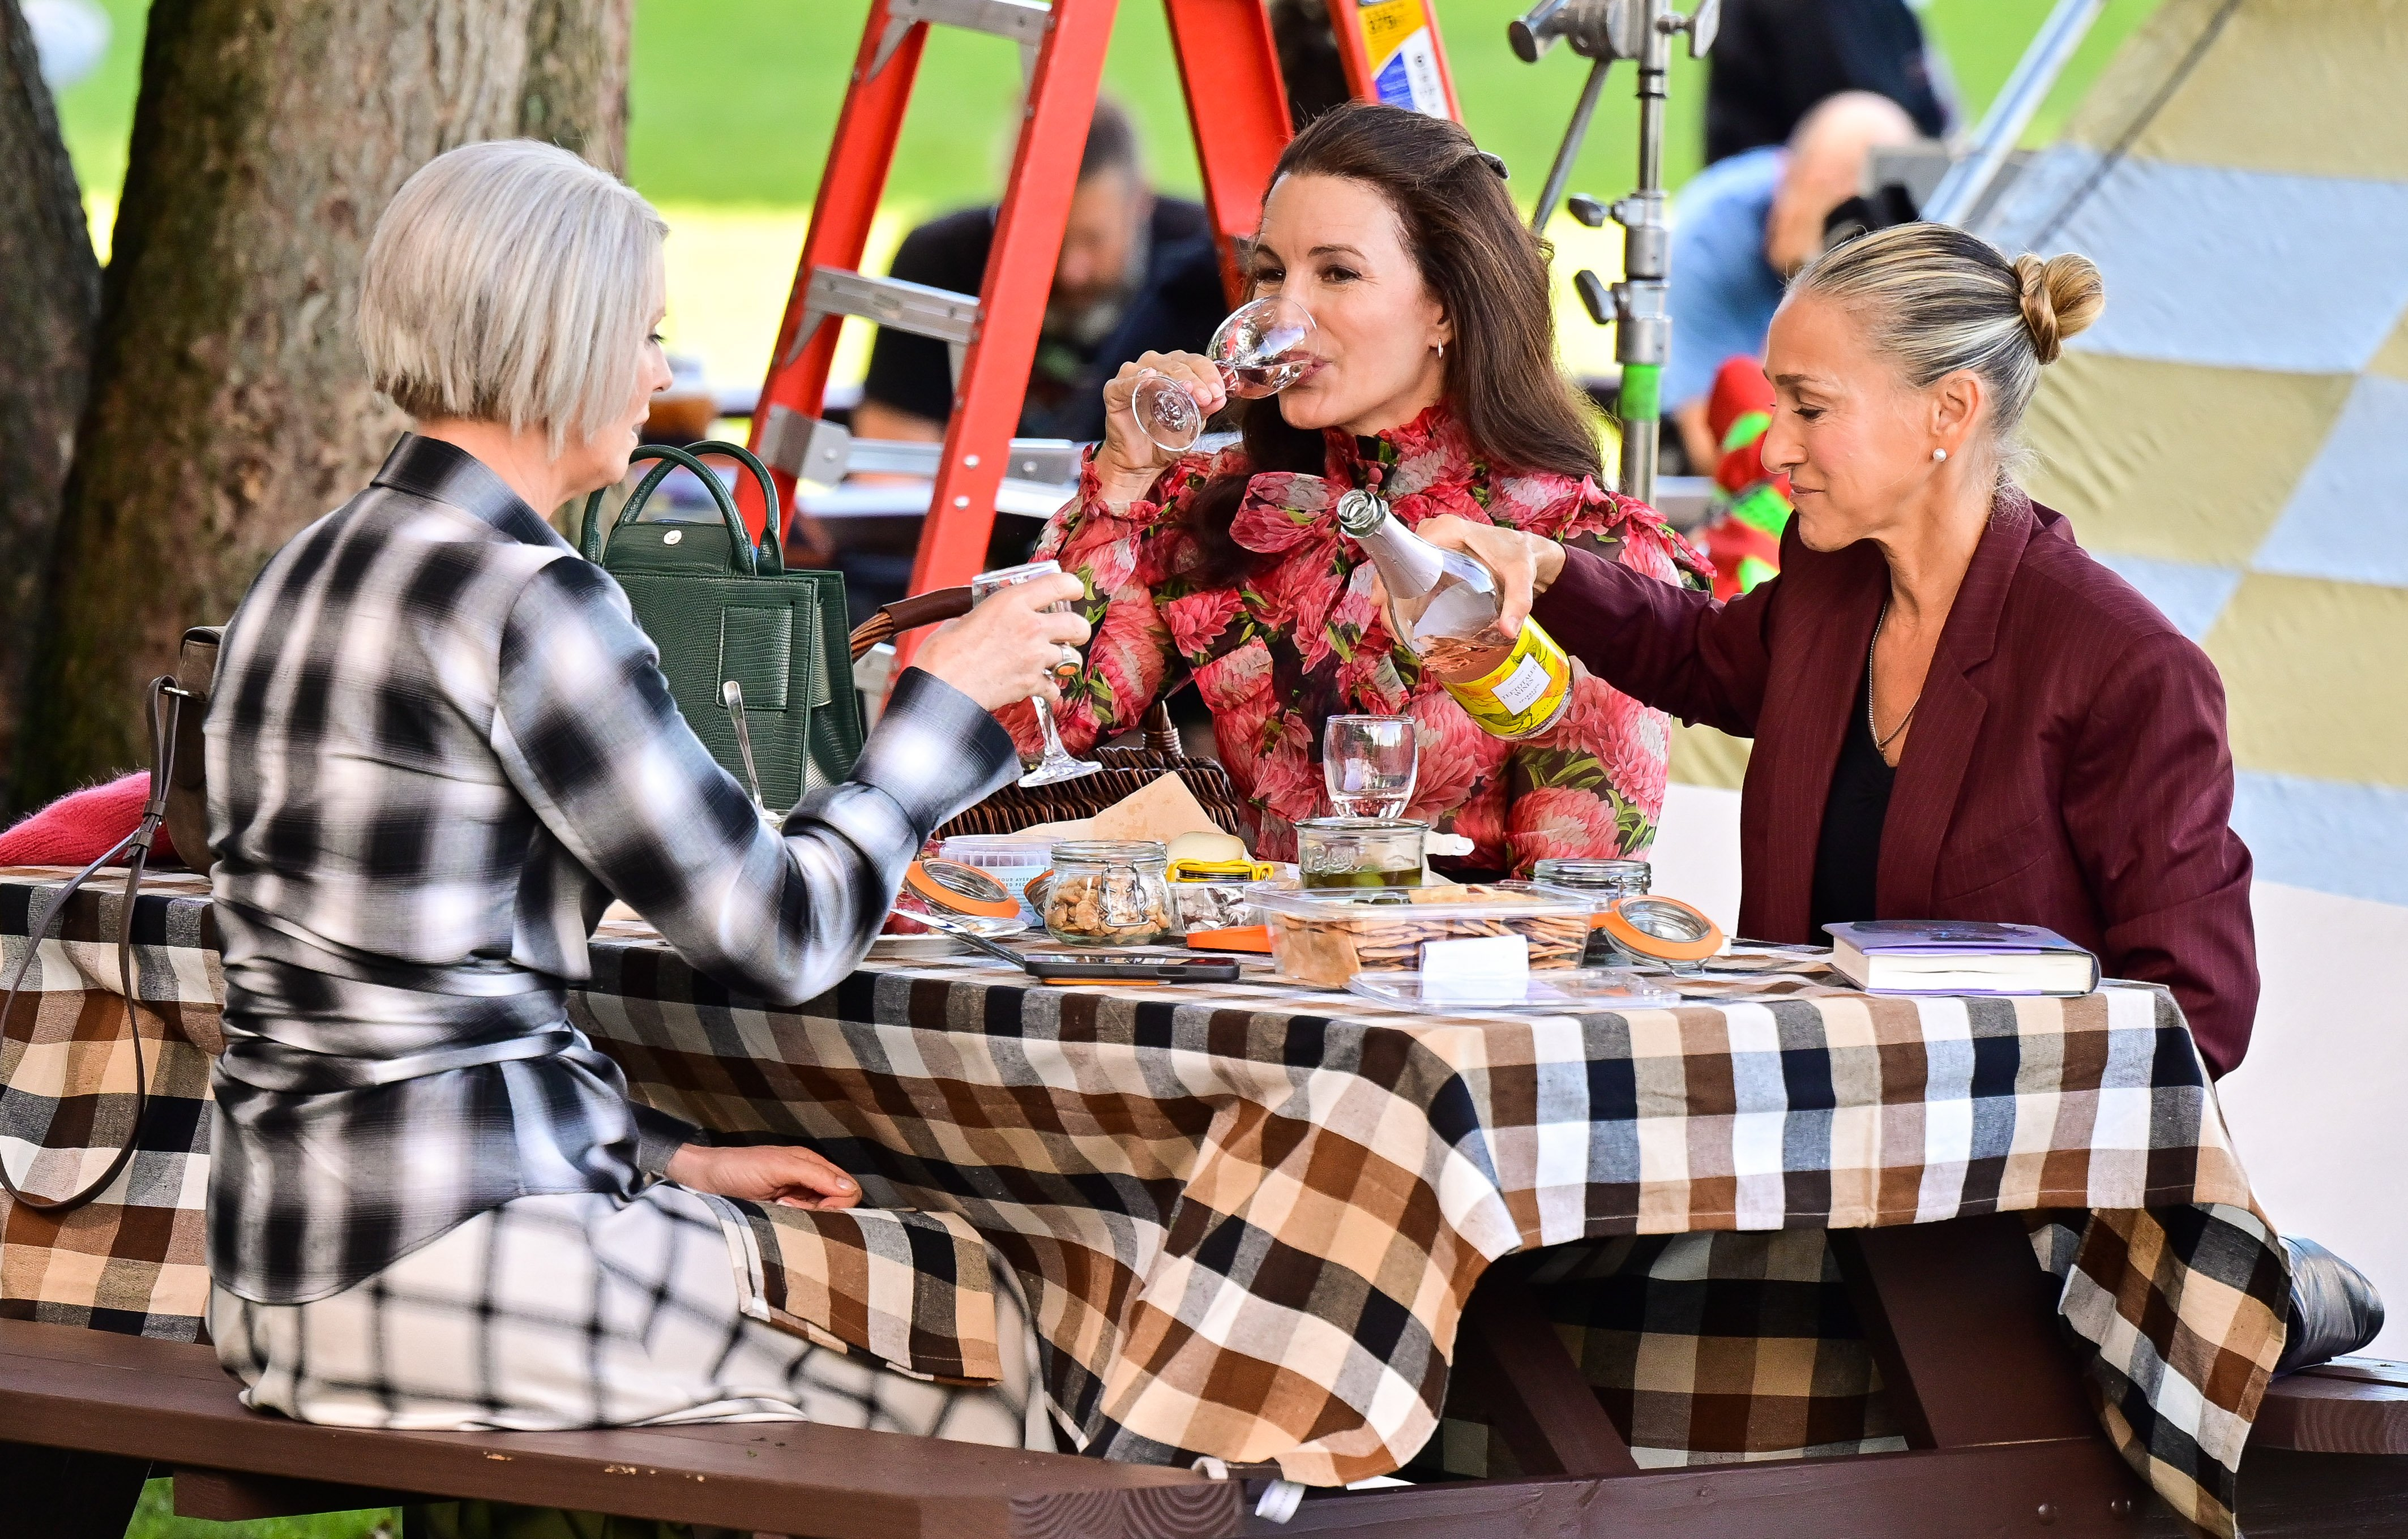 """Sarah Jessica Parker, Cynthia Nixon, and Kristin Davis on the set of """"And Just Like That..."""", New York, 2021 